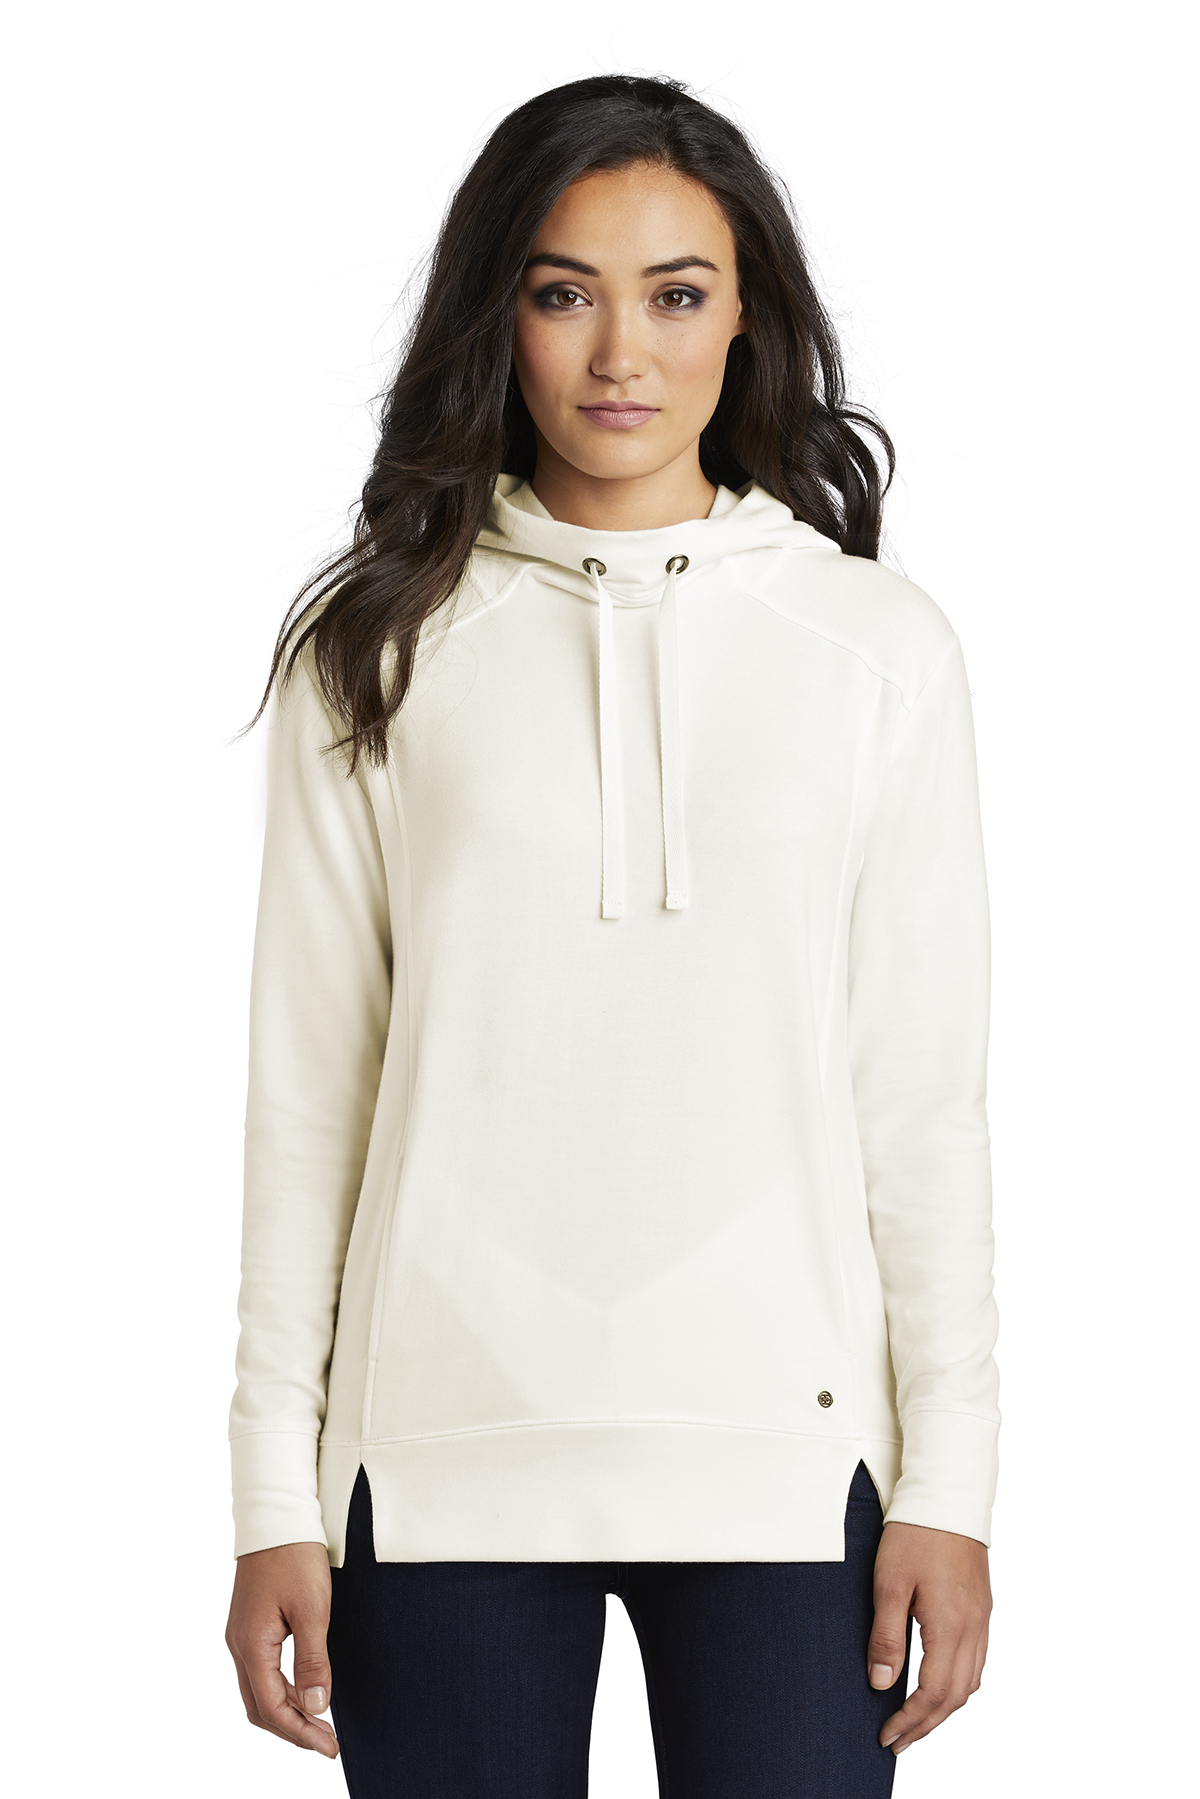 OGIO LOG810 - Ladies Luuma Pullover Fleece Hoodie